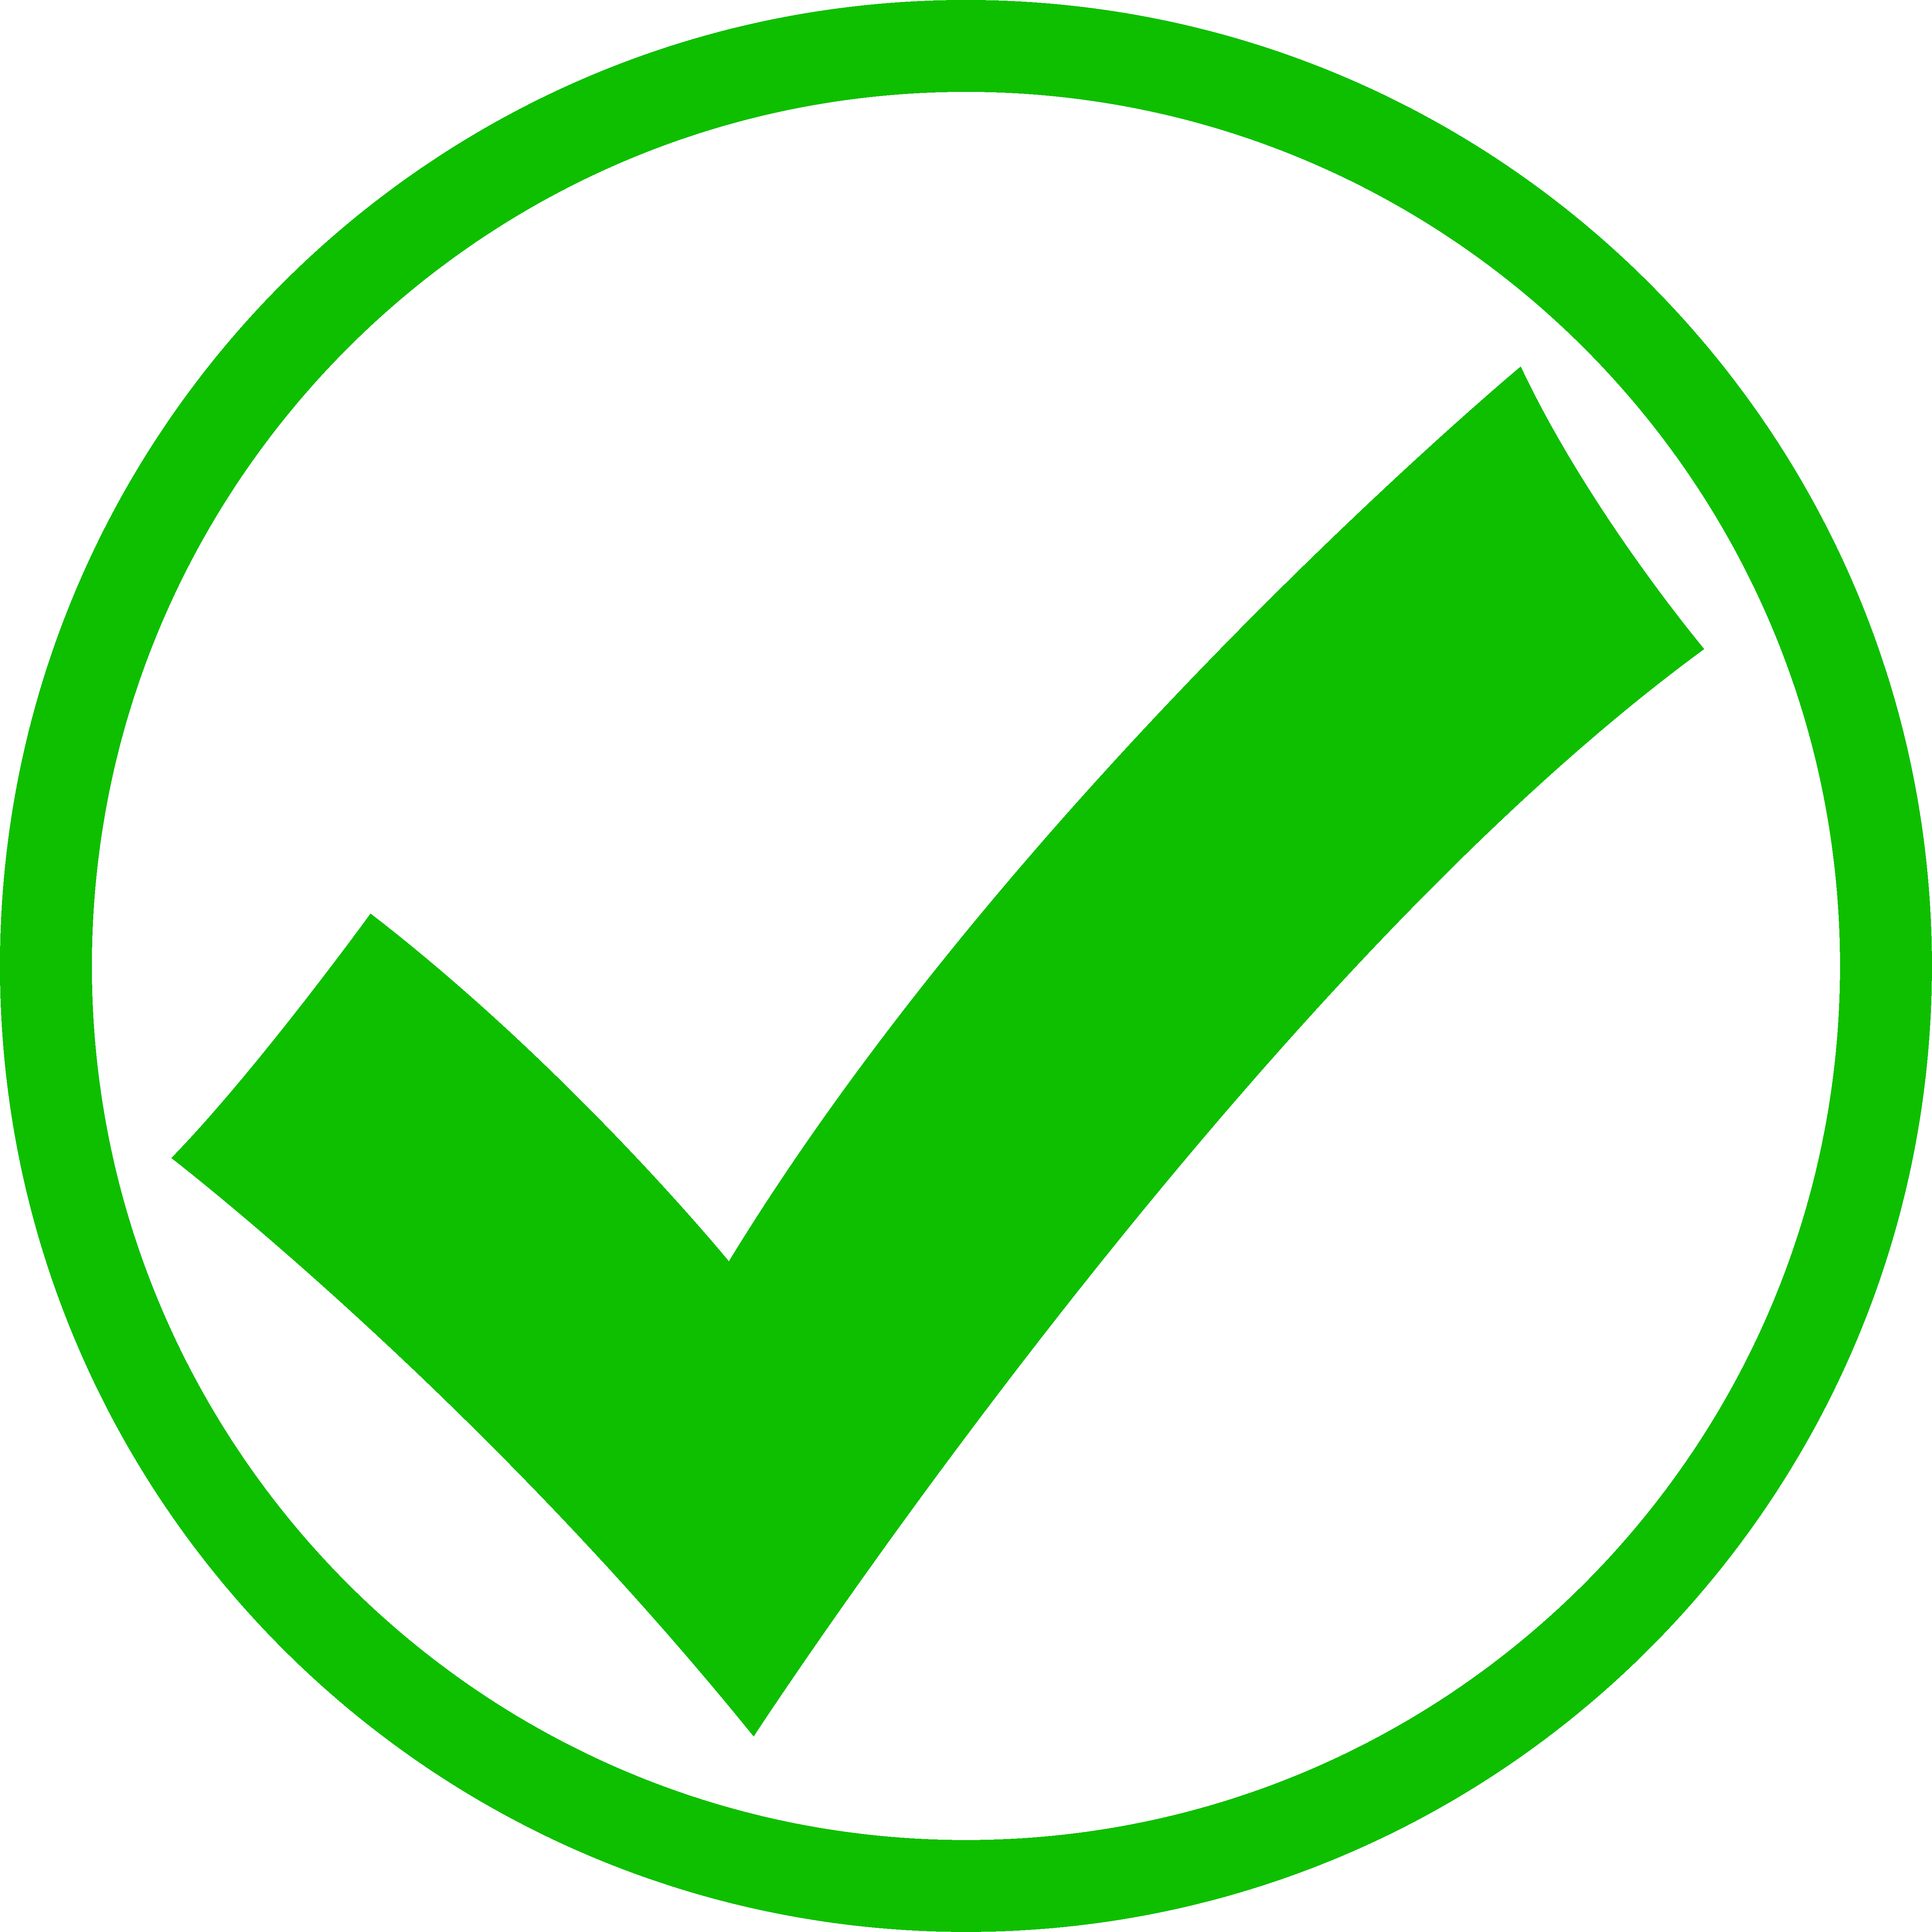 5695x5695 Green Check Mark In Circle